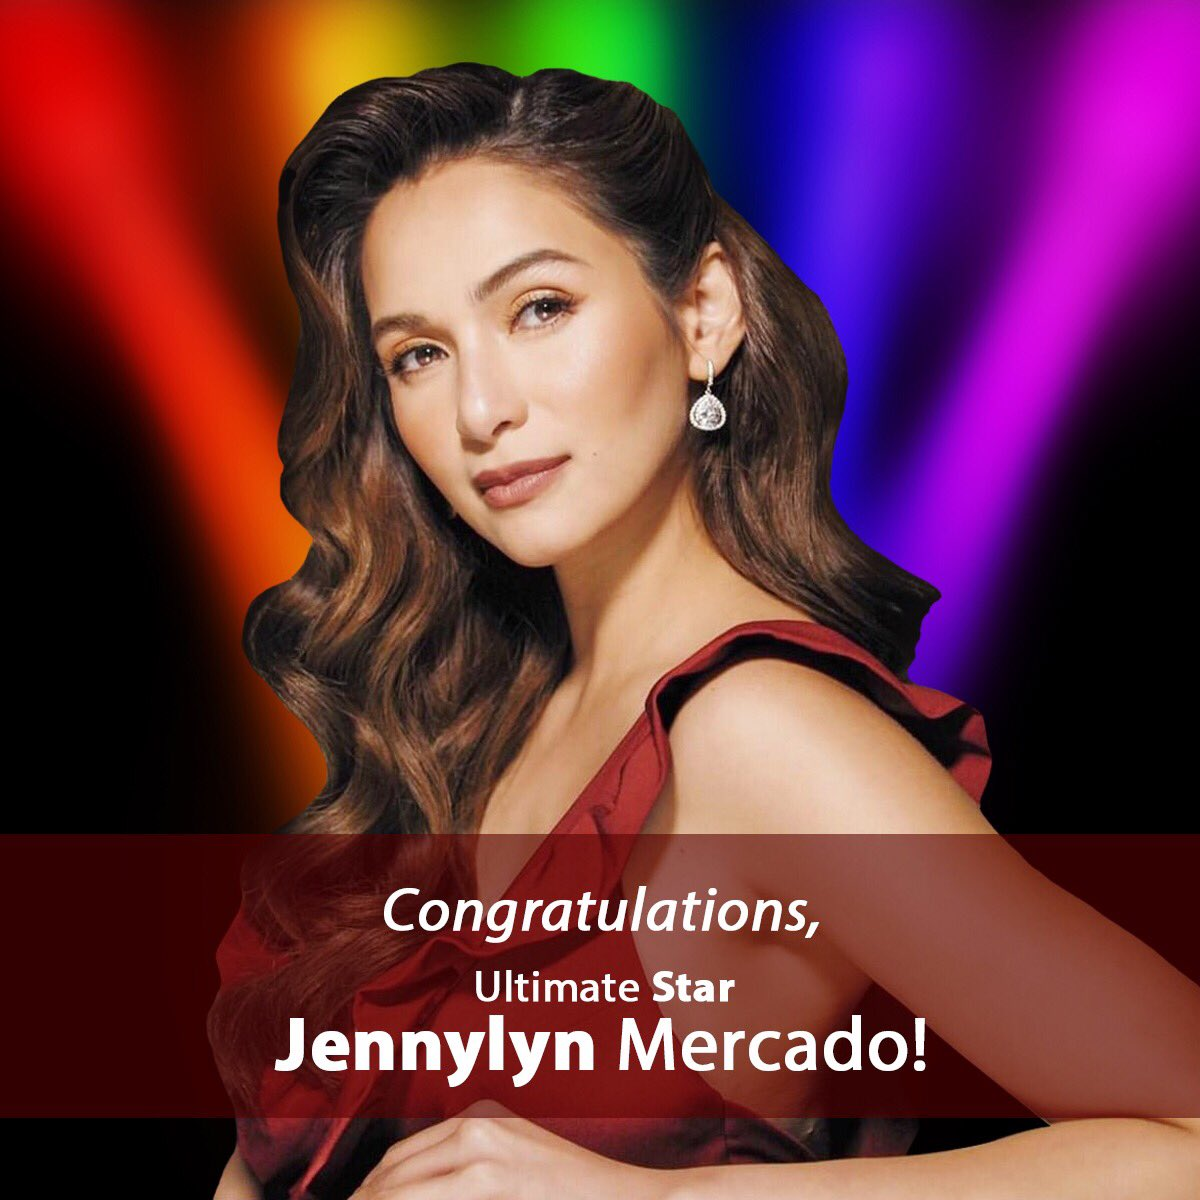 Congratulations to our Ultimate Star and #UltimateLoyalKapuso @MercadoJen for your contract renewal with GMA Network! https://t.co/NyUiBKodOI